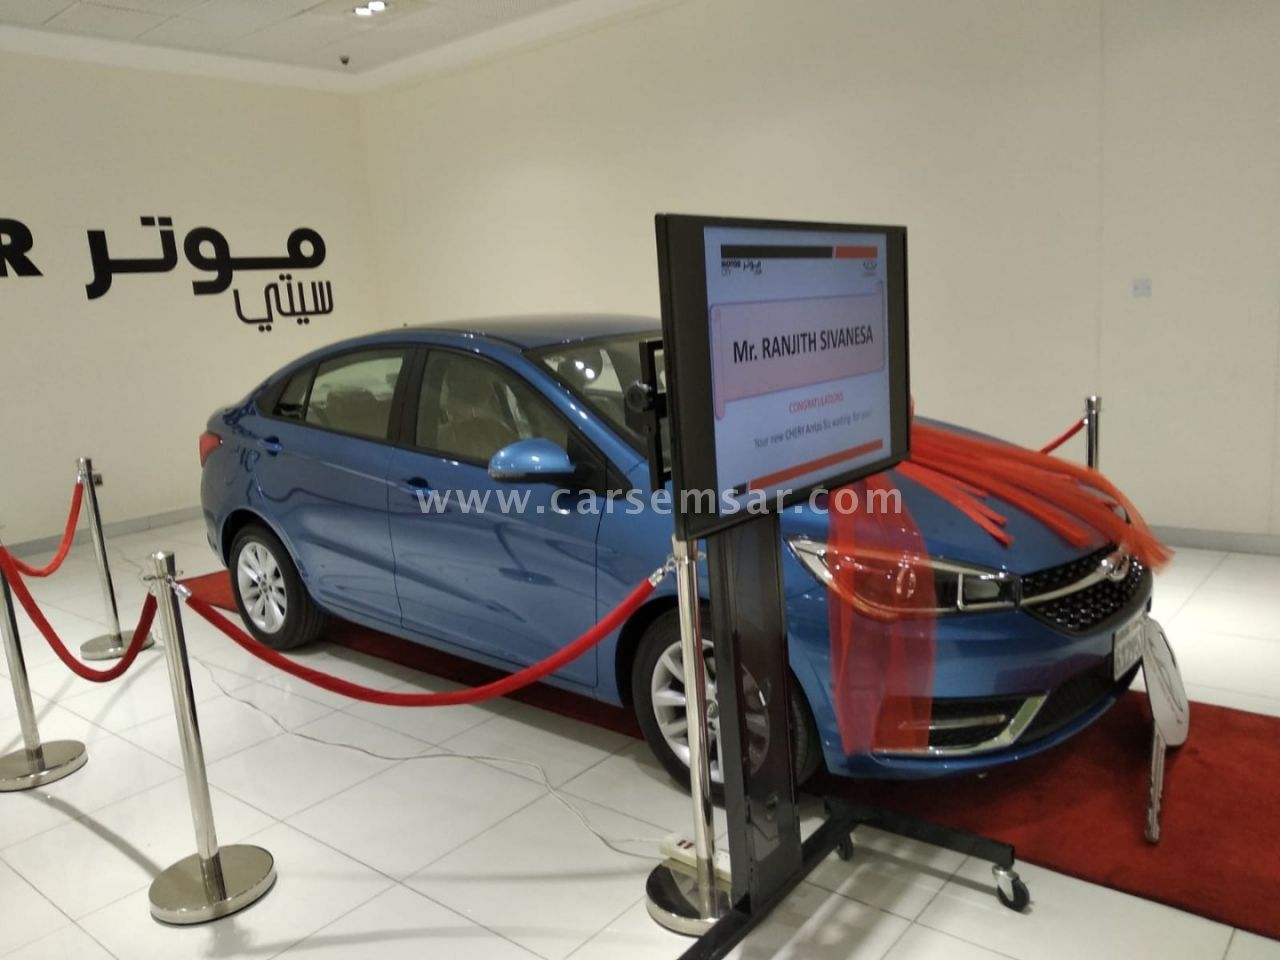 2019 Chery Arizo 1 8 for sale in Bahrain - New and used cars for sale